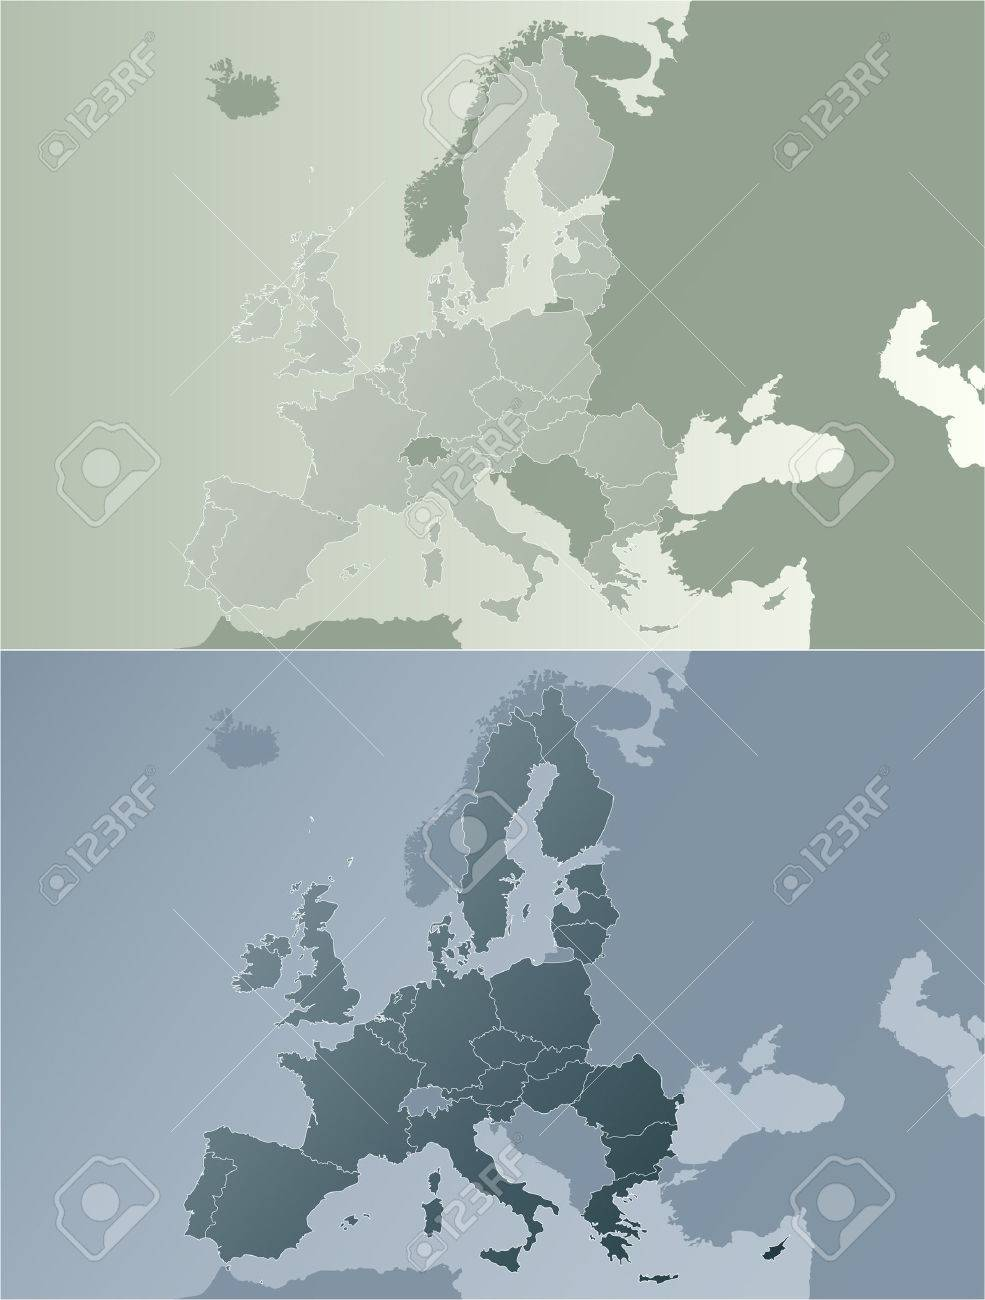 Vector illustration of the European Union map with state borders. Two color variations in modern earth color tones. Stock Vector - 3482376